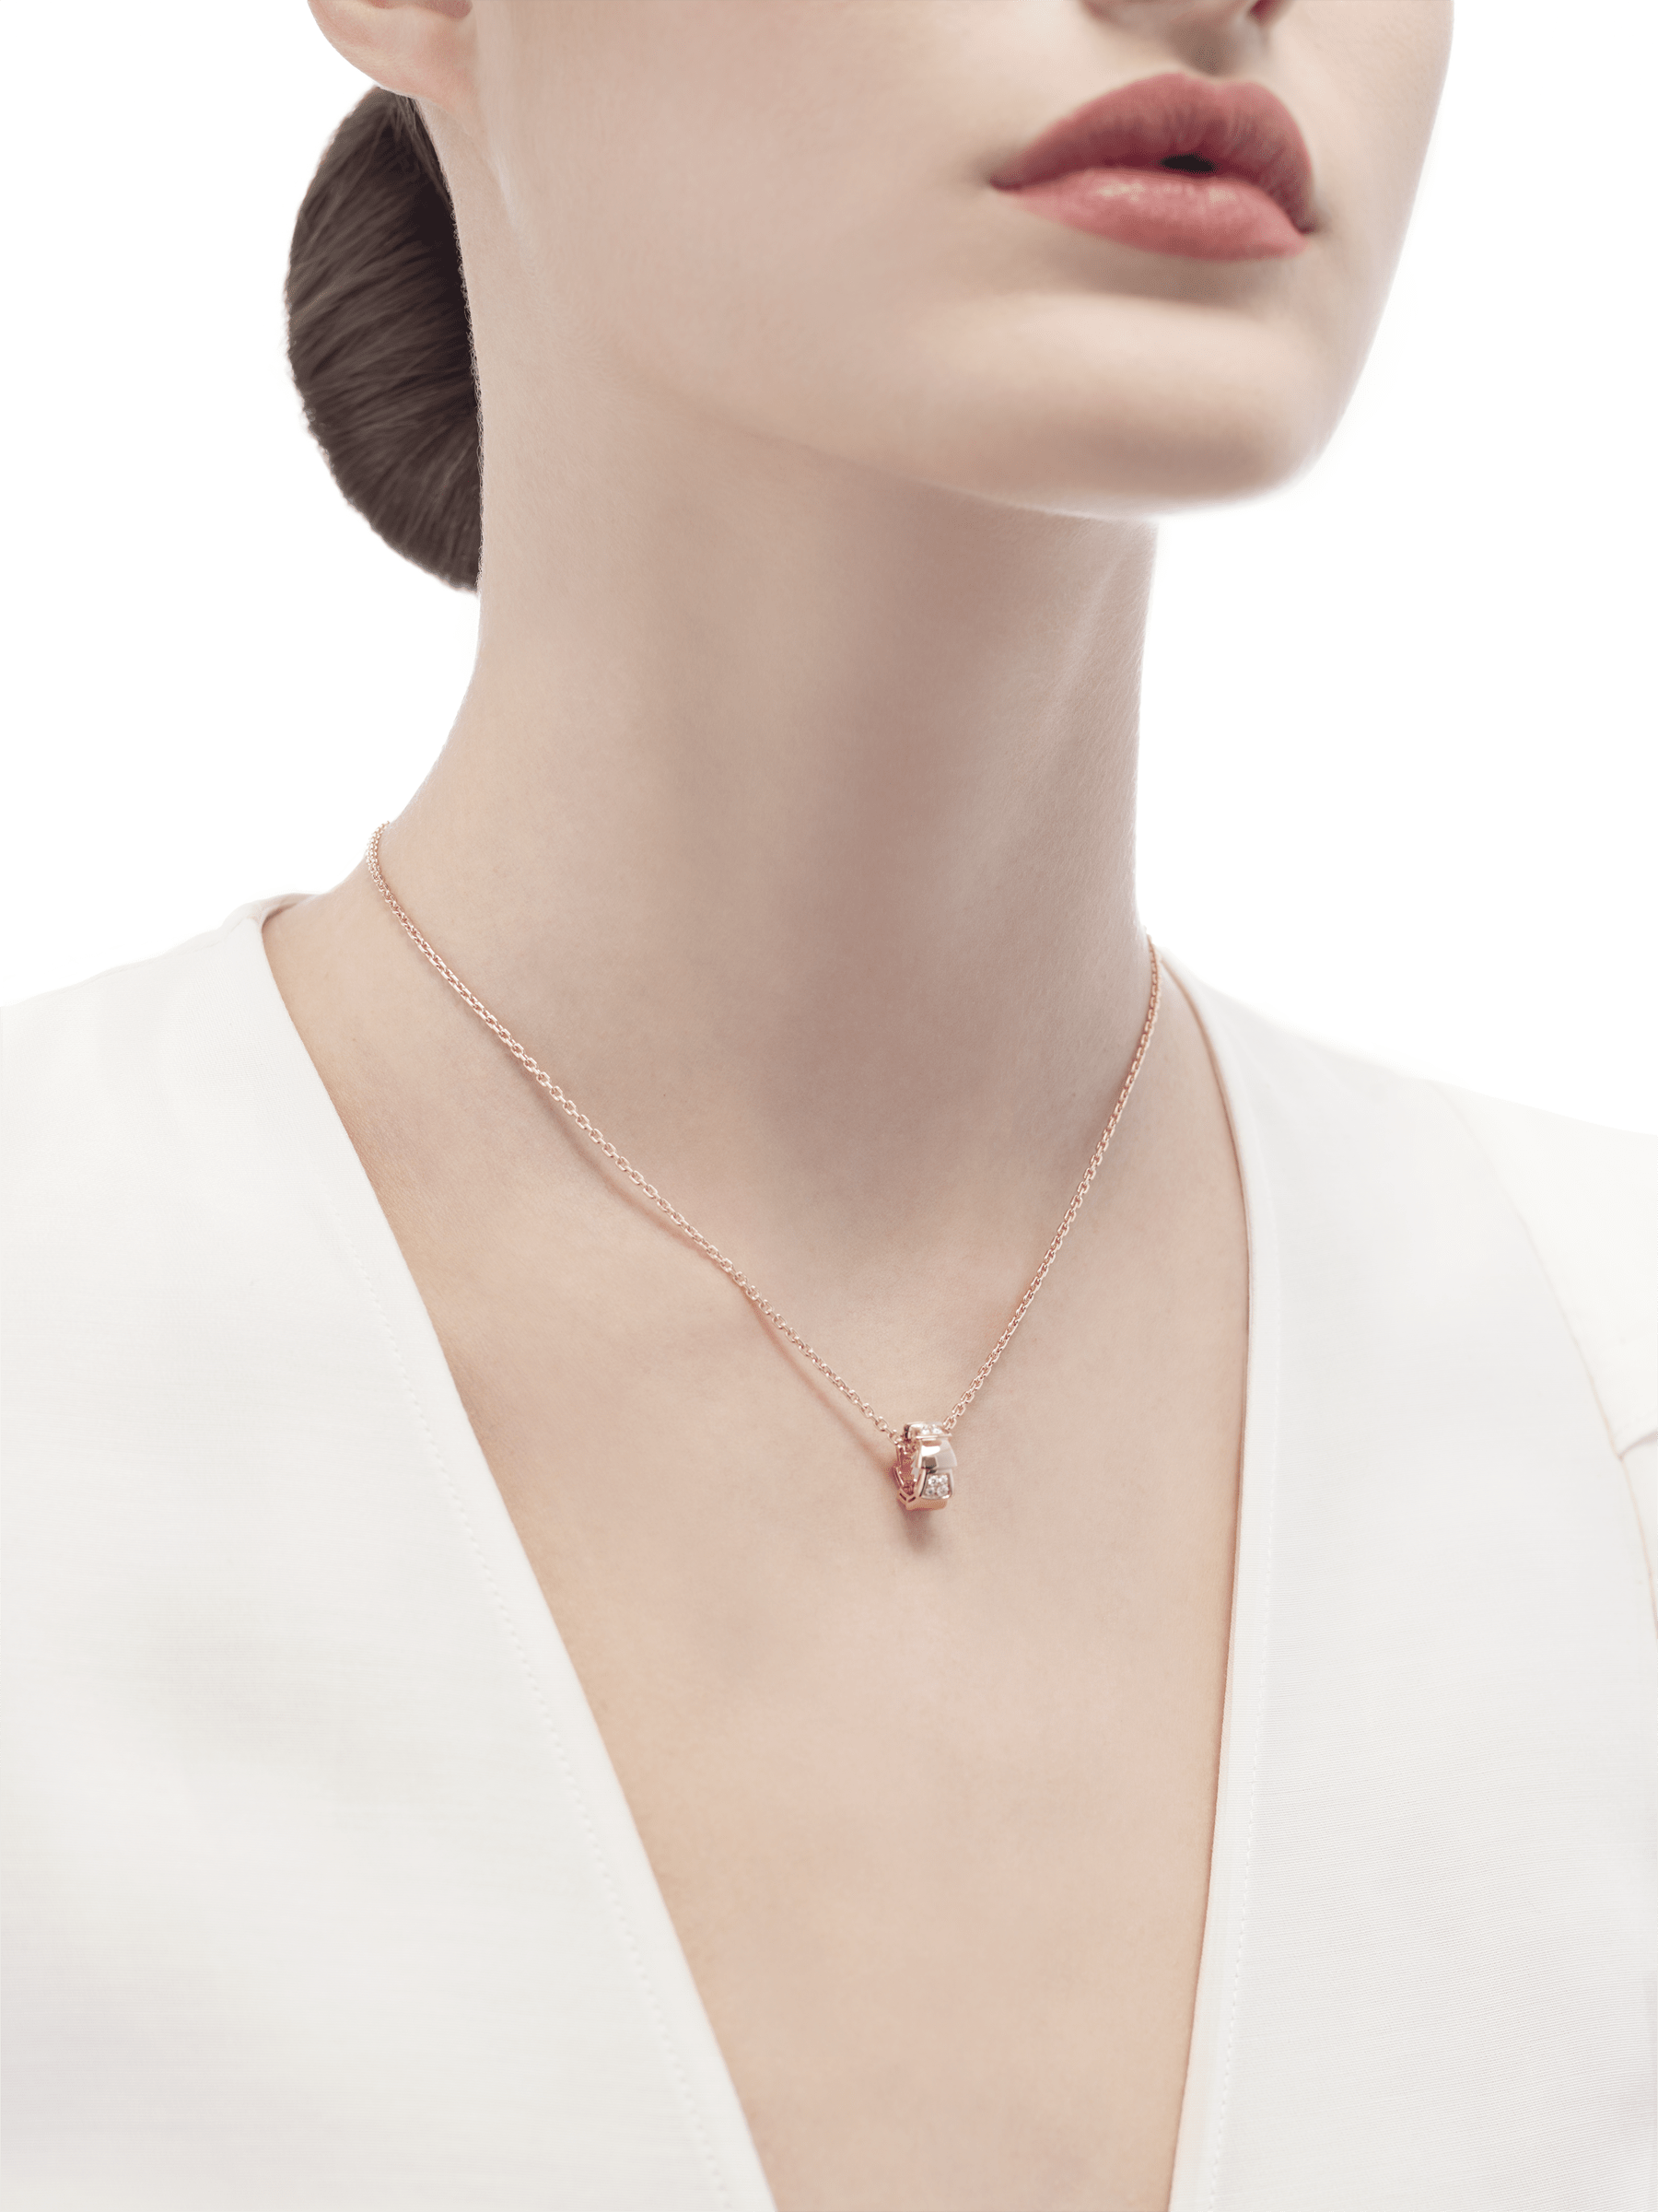 Serpenti Viper necklace with 18 kt rose gold chain and 18 kt rose gold pendant set with demi pavé diamonds. (0.21 ct) 355254 image 4